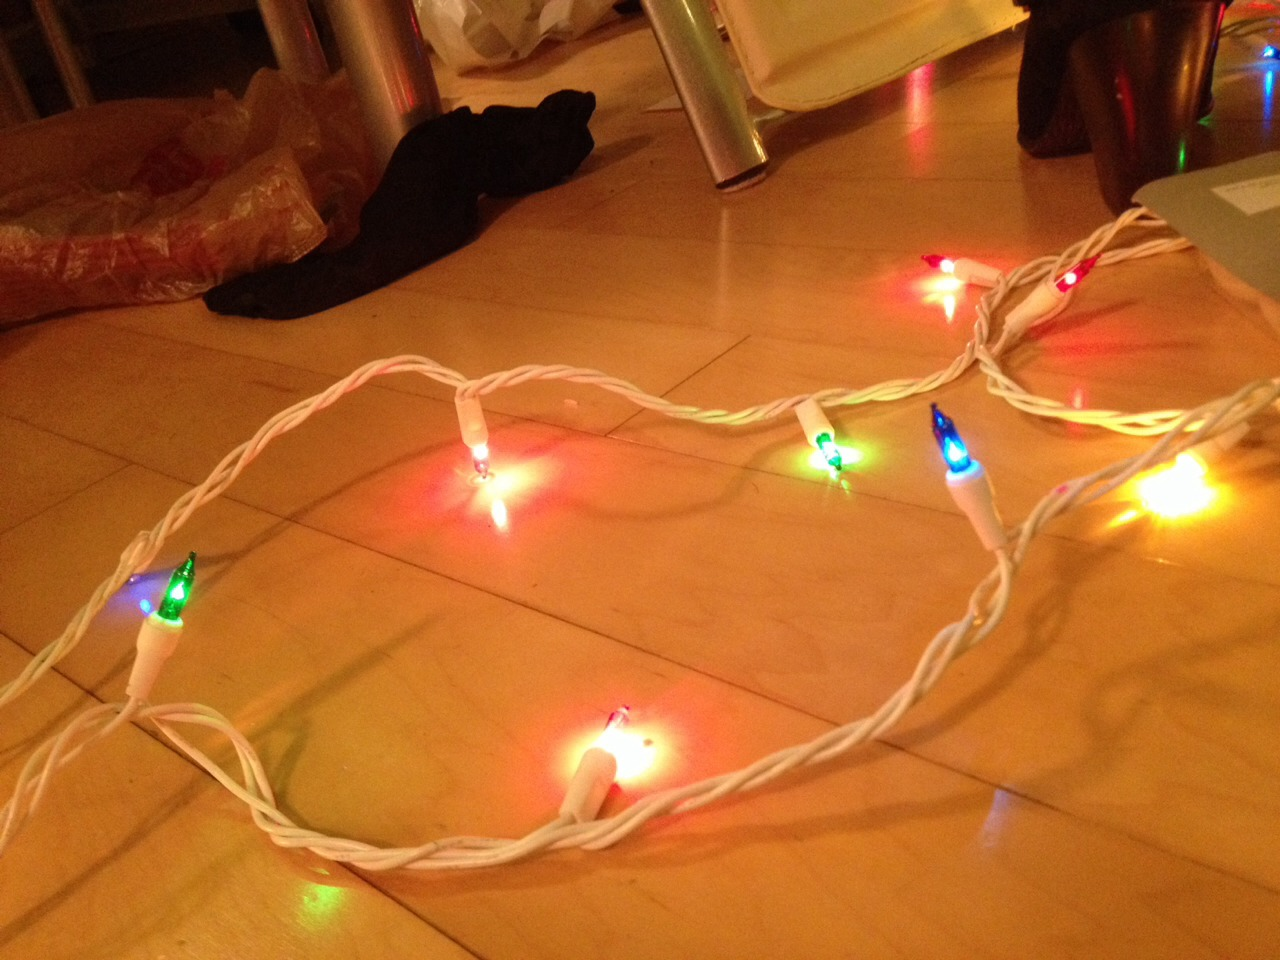 Get some Christmas lights, colored ones work best